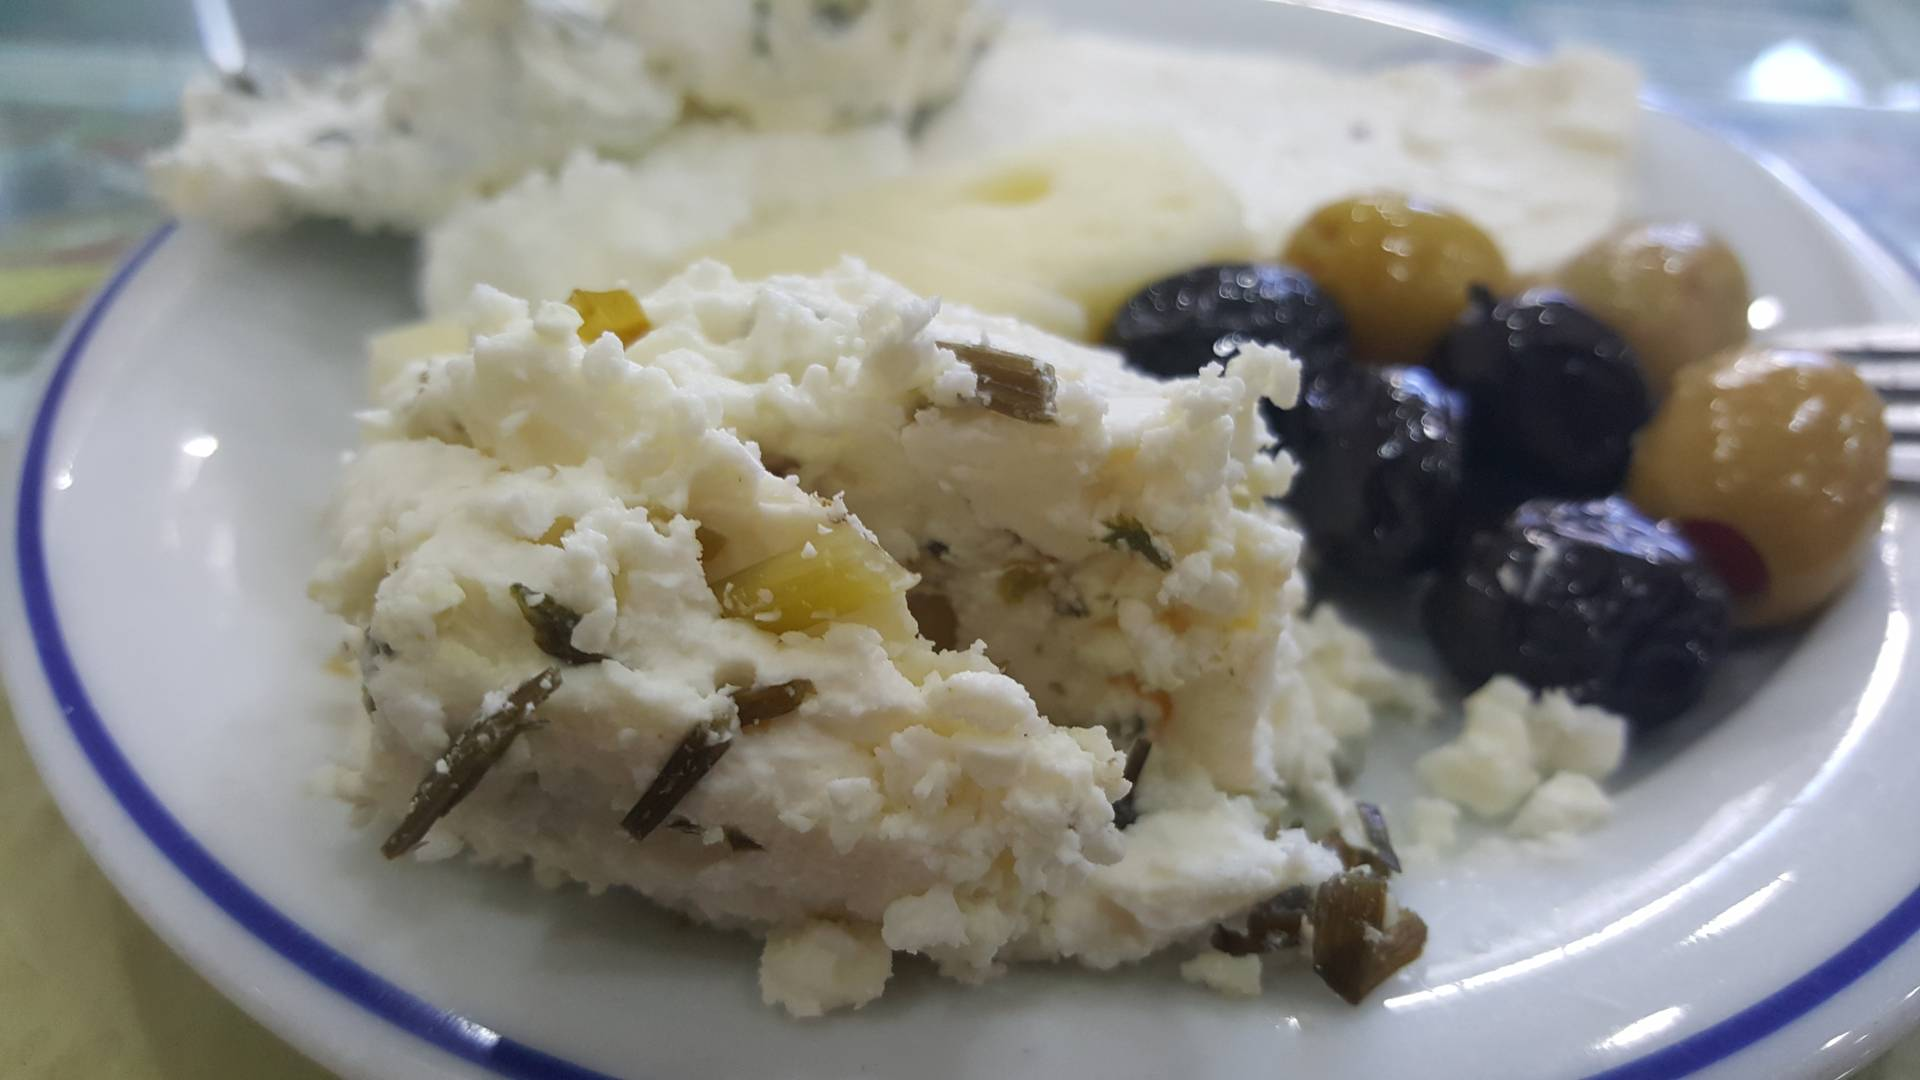 Van Otlu Peynir: special herbed cheese type from the area of Lake Van